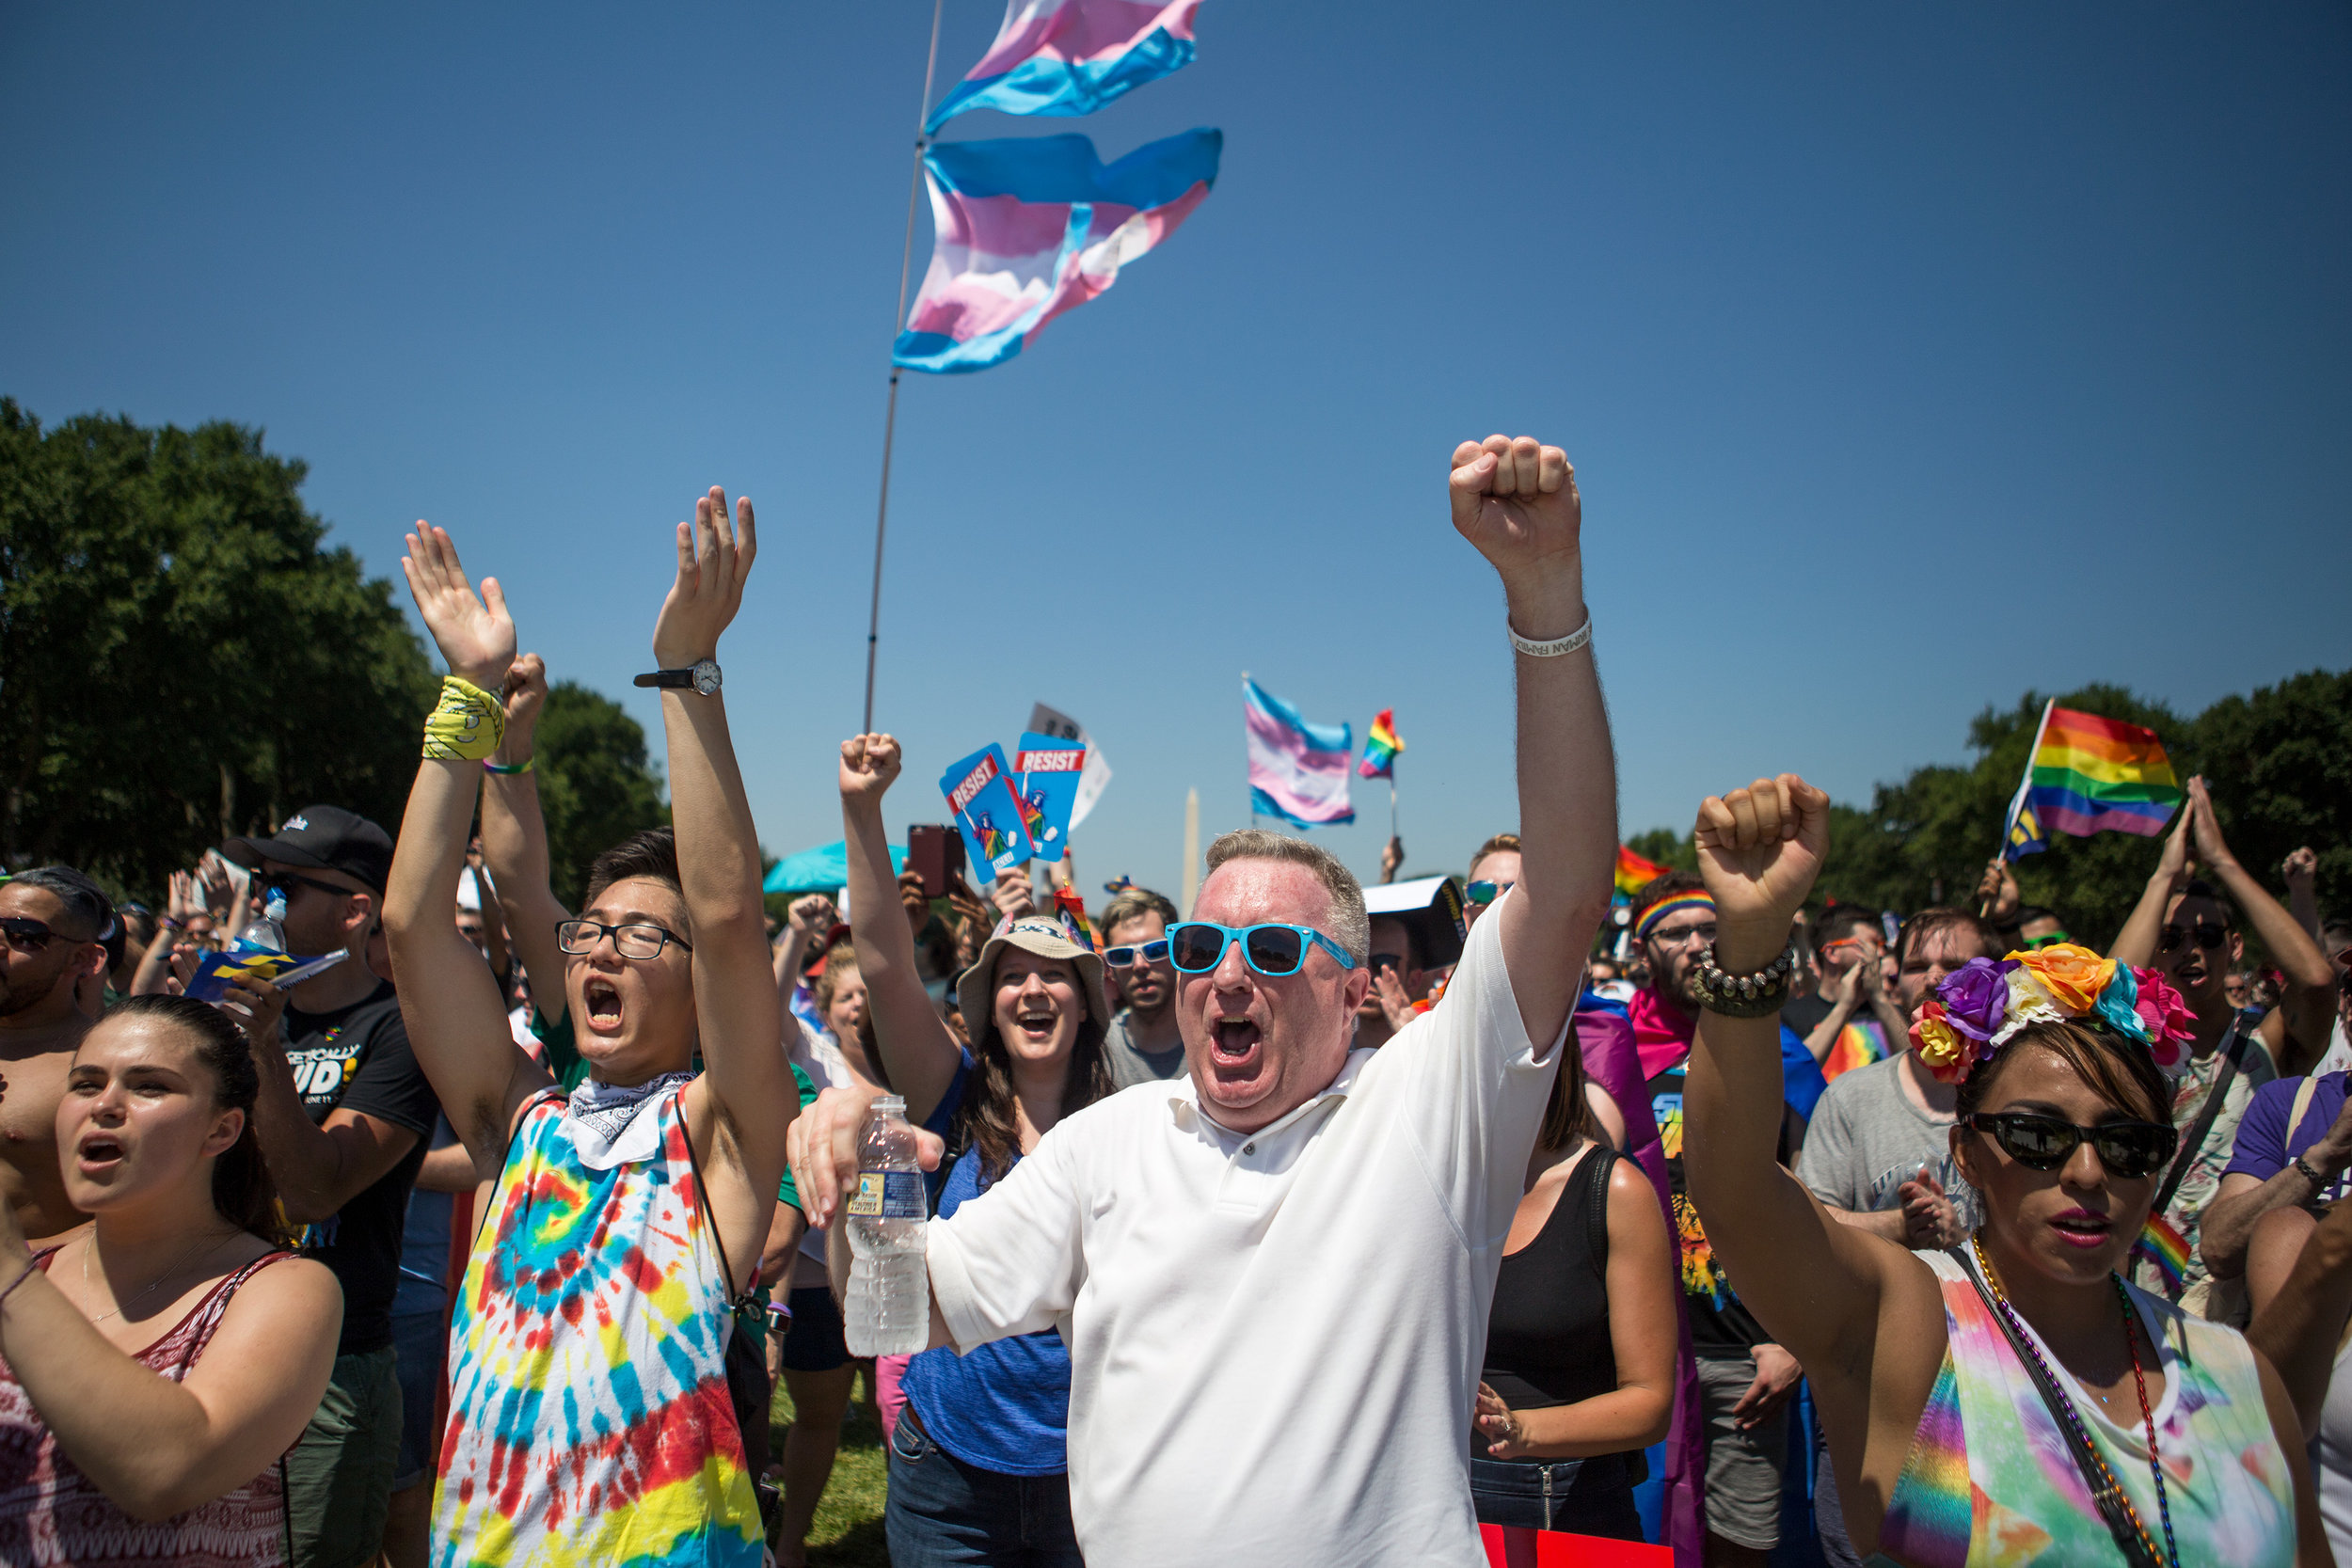 Michael J. Cooper, center, of Arlington, VA cheers alongside a vast crowd of other demonstrators on the National Mall in Washington D.C. during the Equality March on Sunday, June 11. (Photo: Liam James Doyle/NPR)